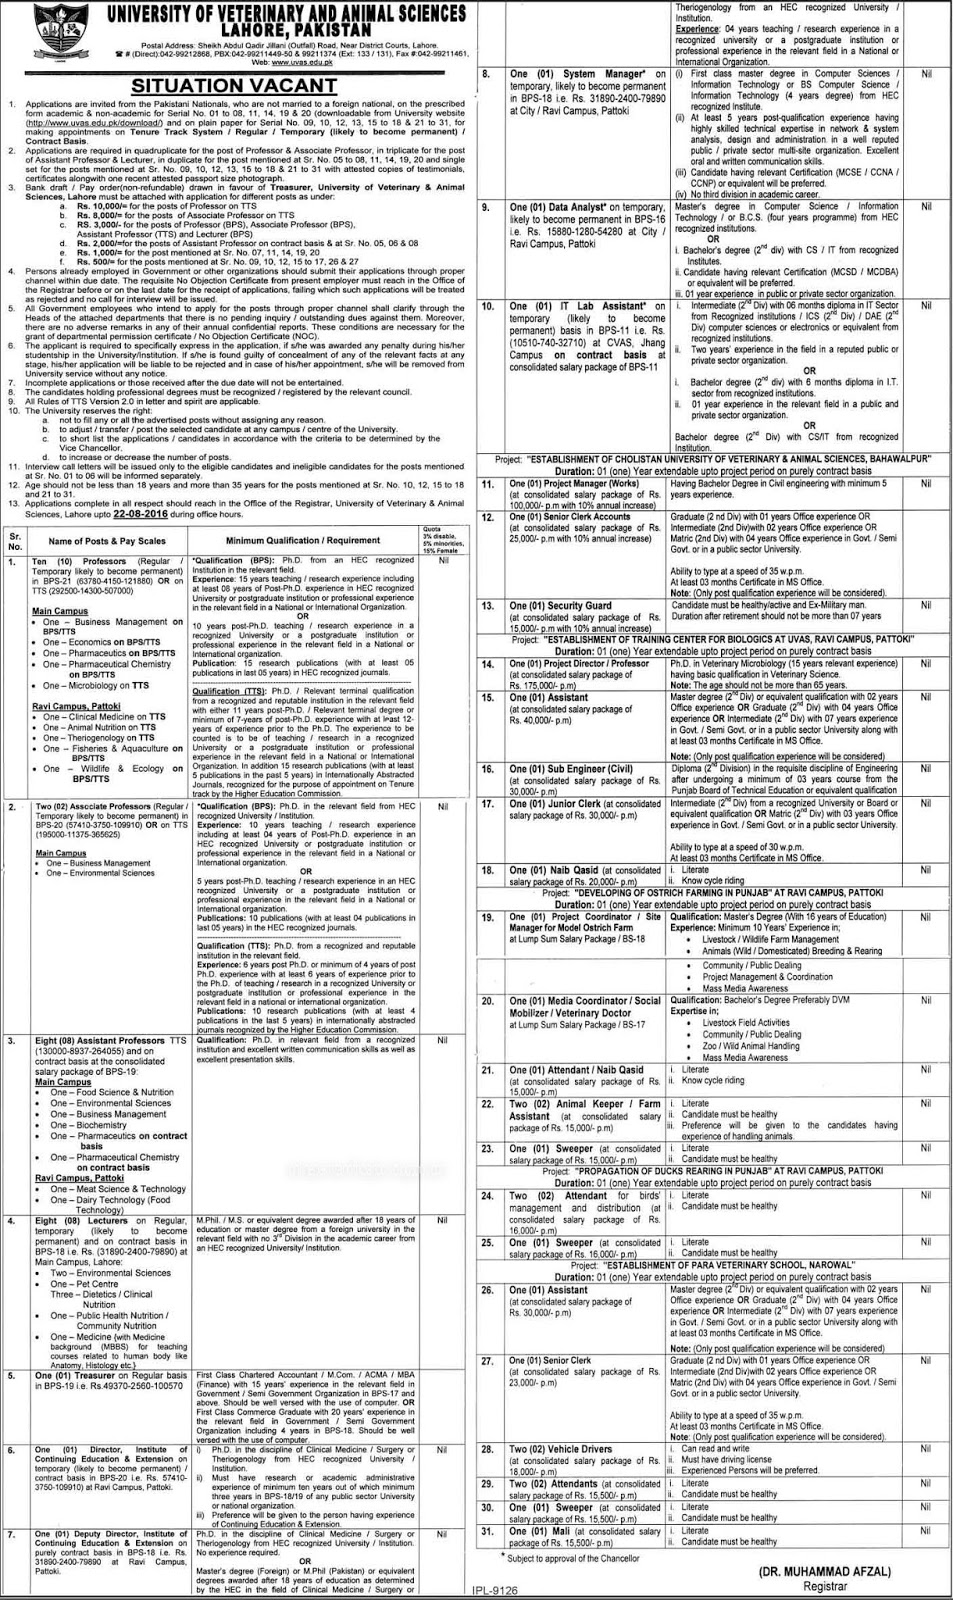 Jobs in University of Veterinary and Animal Sciences Lahore 2016